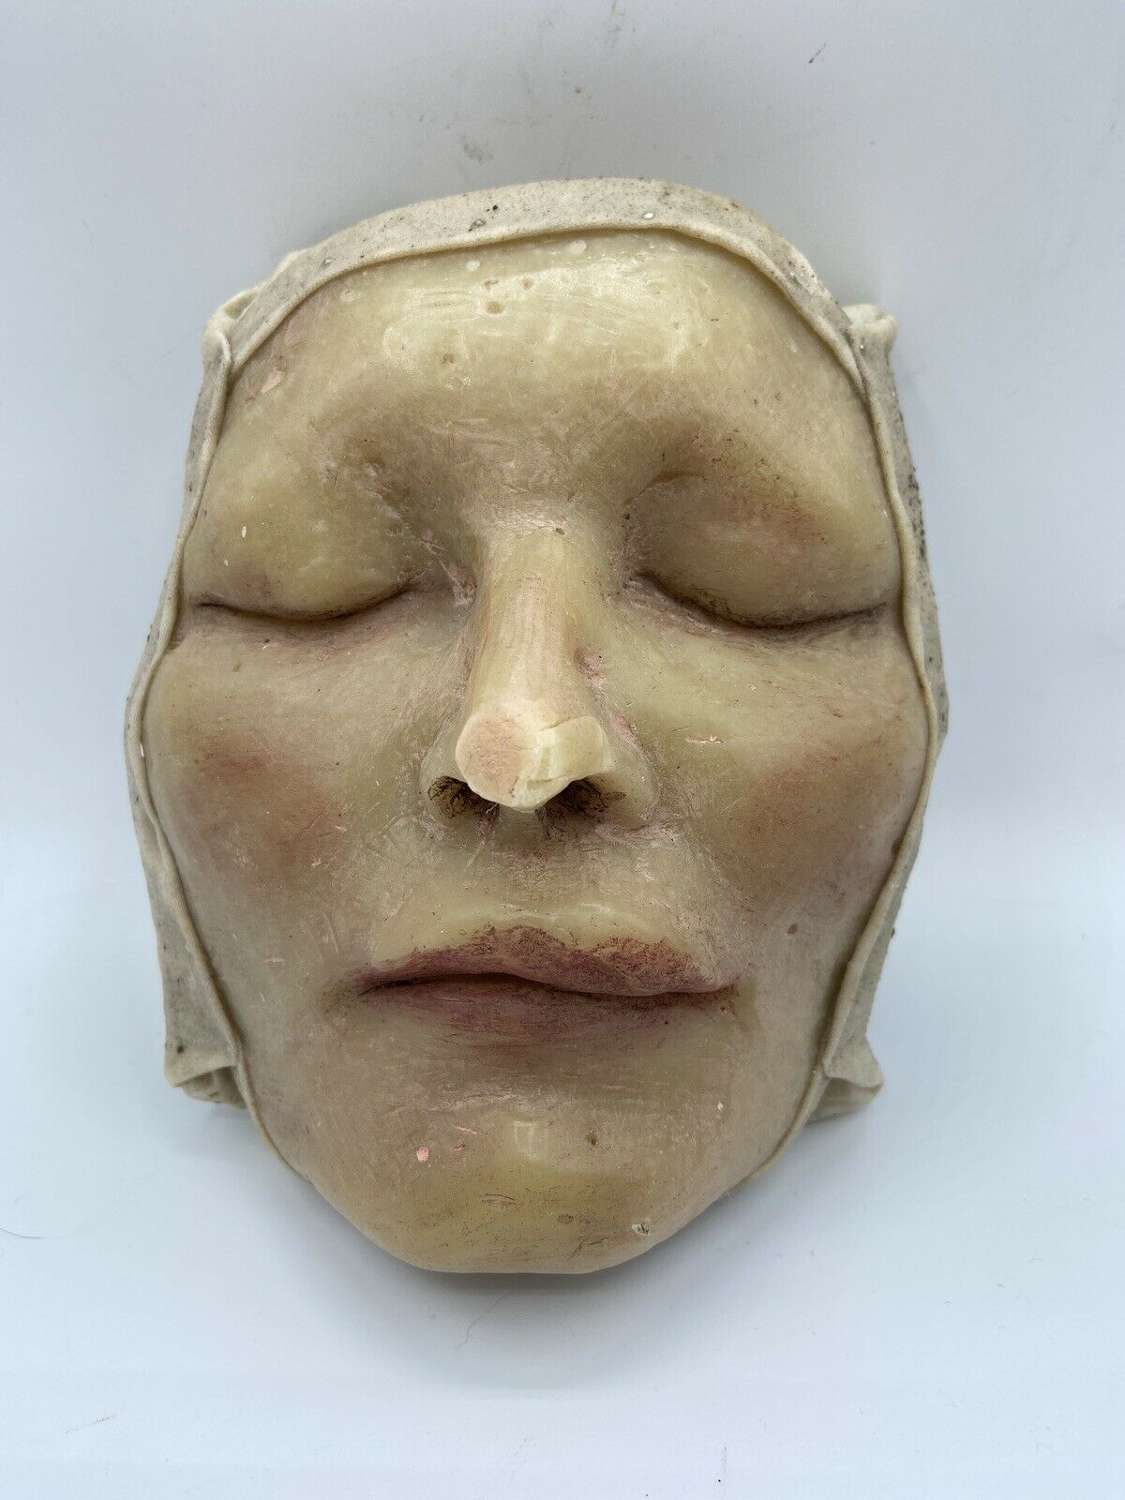 Antique Medical Taxidermy Wax Moulage Of Female With A Swollen Lip